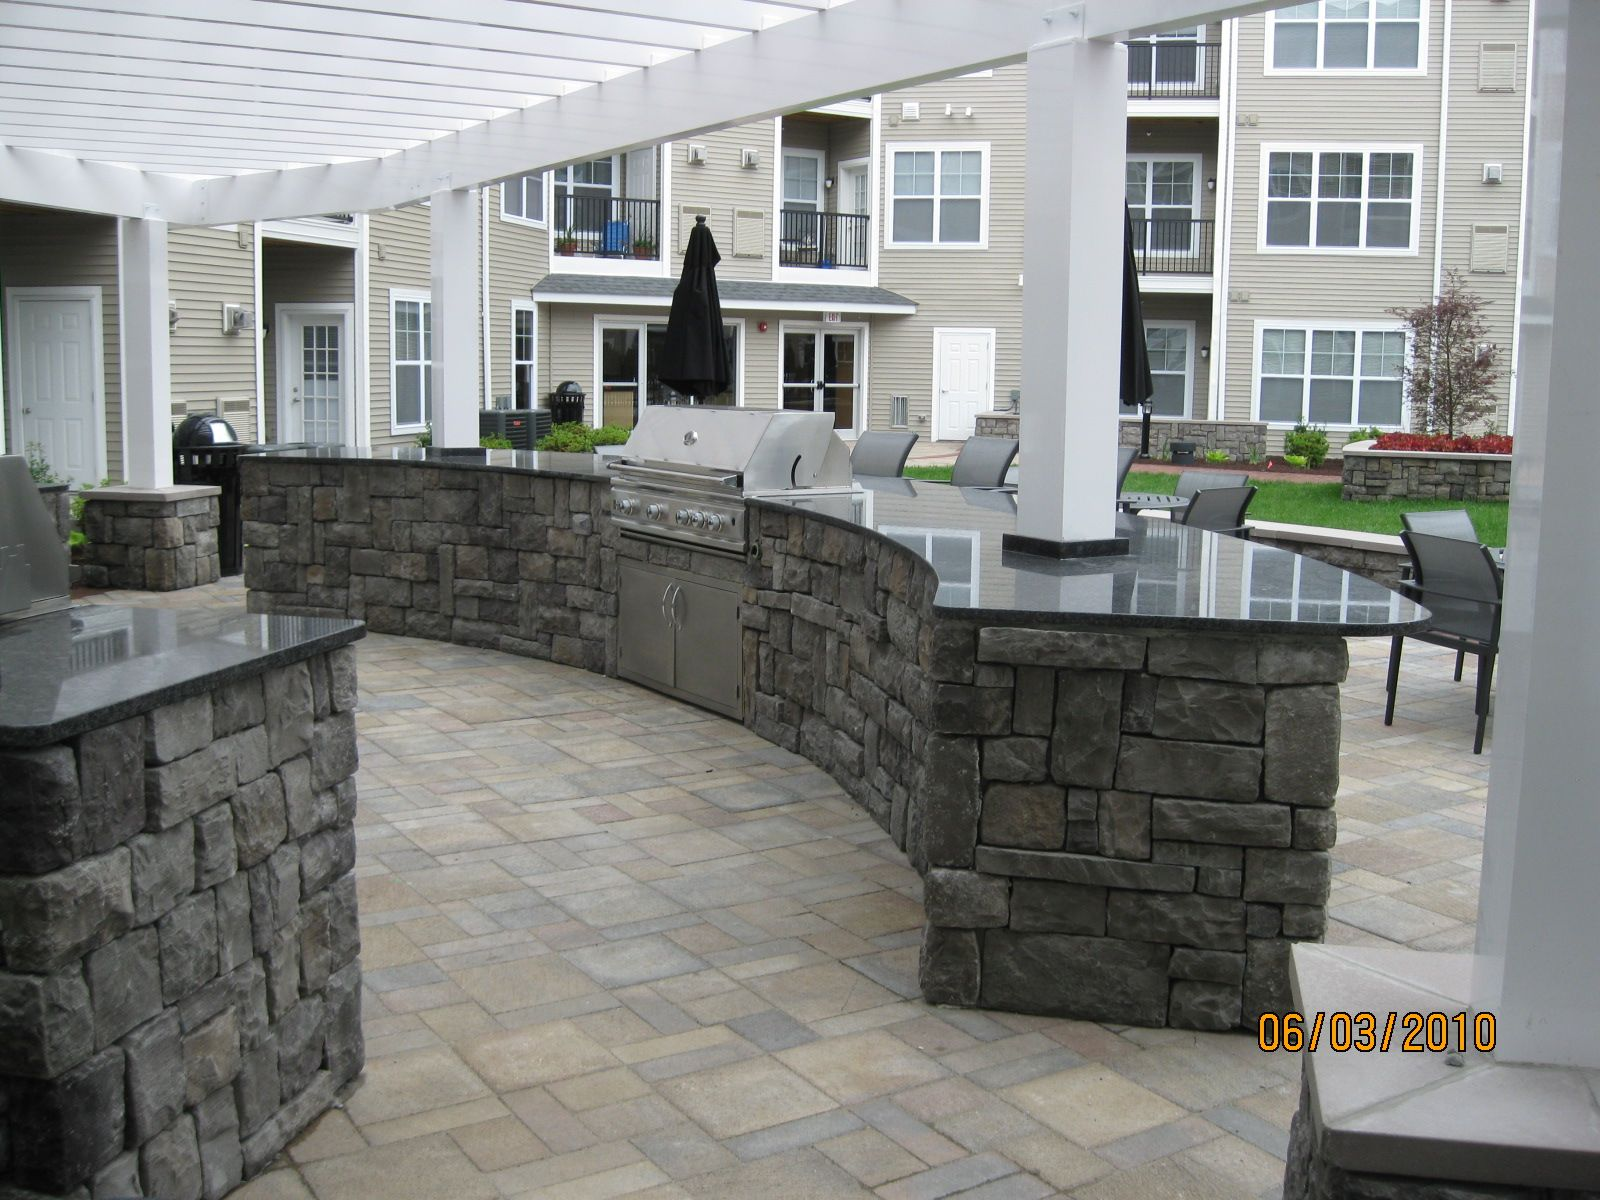 Covered outdoor kitchen outdoor kitchen ideas with stone kitchen - Kitchens Curved Radius With Pergoal Posts Built Right Through Modular Cabinets Outdoor